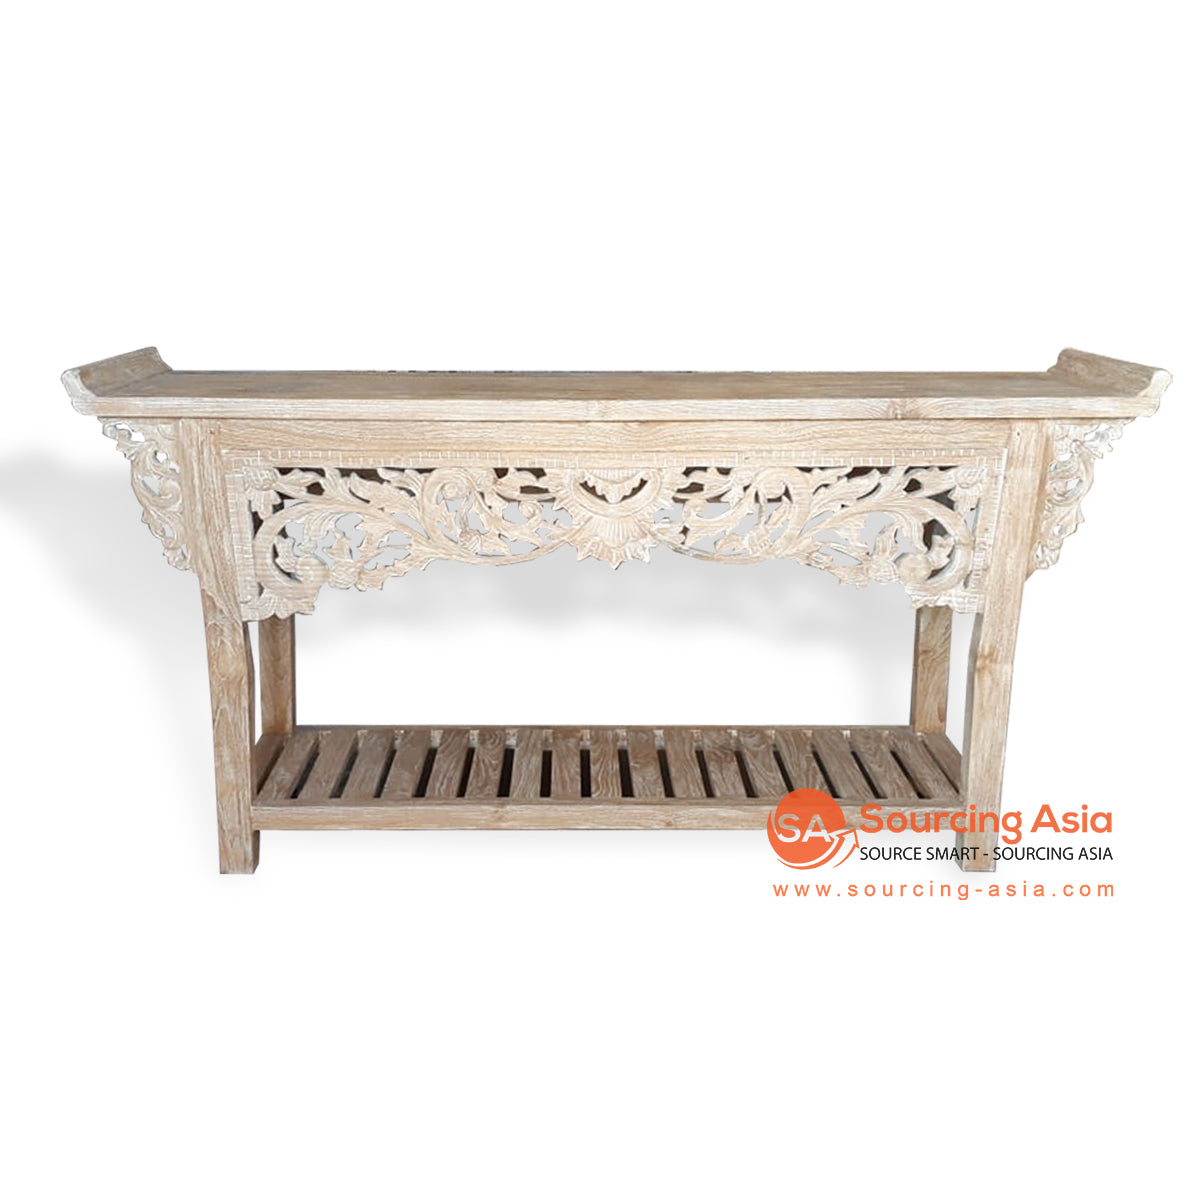 EVA070-1 CARVED RECYCLED WOOD CONSOLE